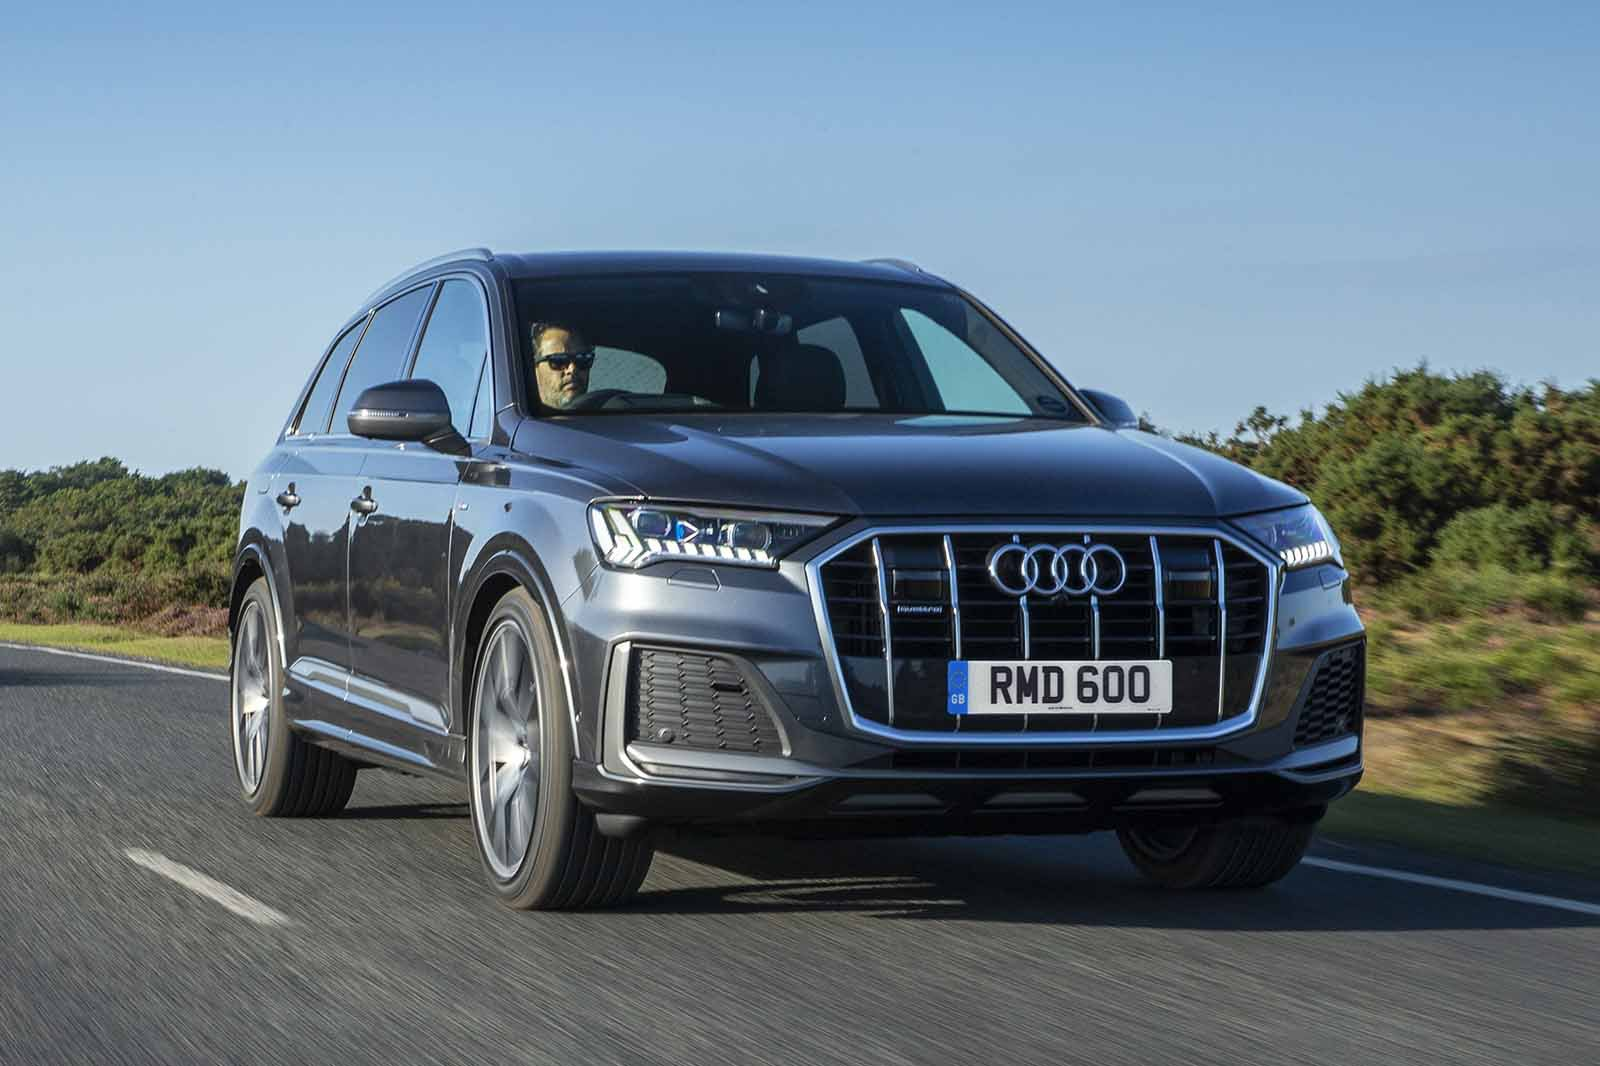 Audi Q7 2019 RHD front right tracking